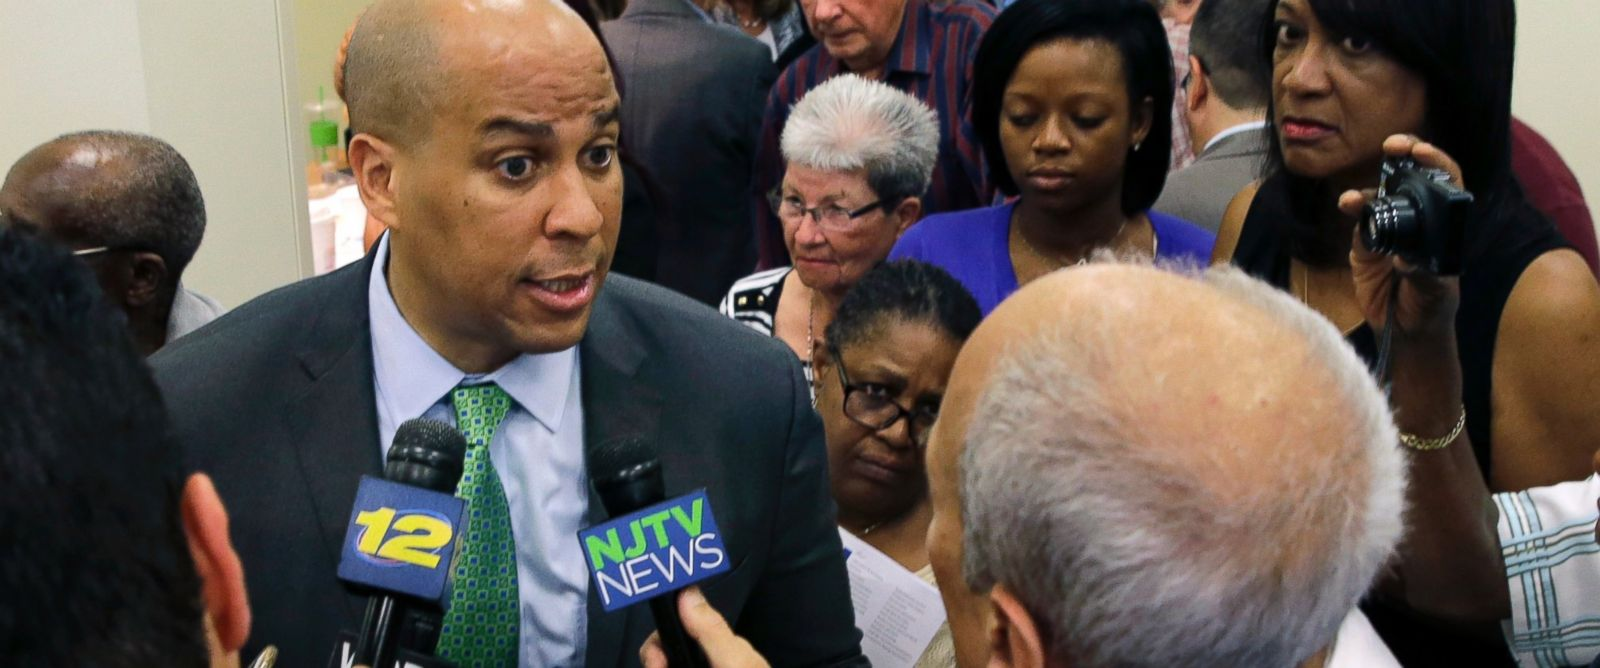 PHOTO: Senator Cory Booker, left, D-N.J., answers to a question at a gathering in Union, N.J., July 27, 2015.